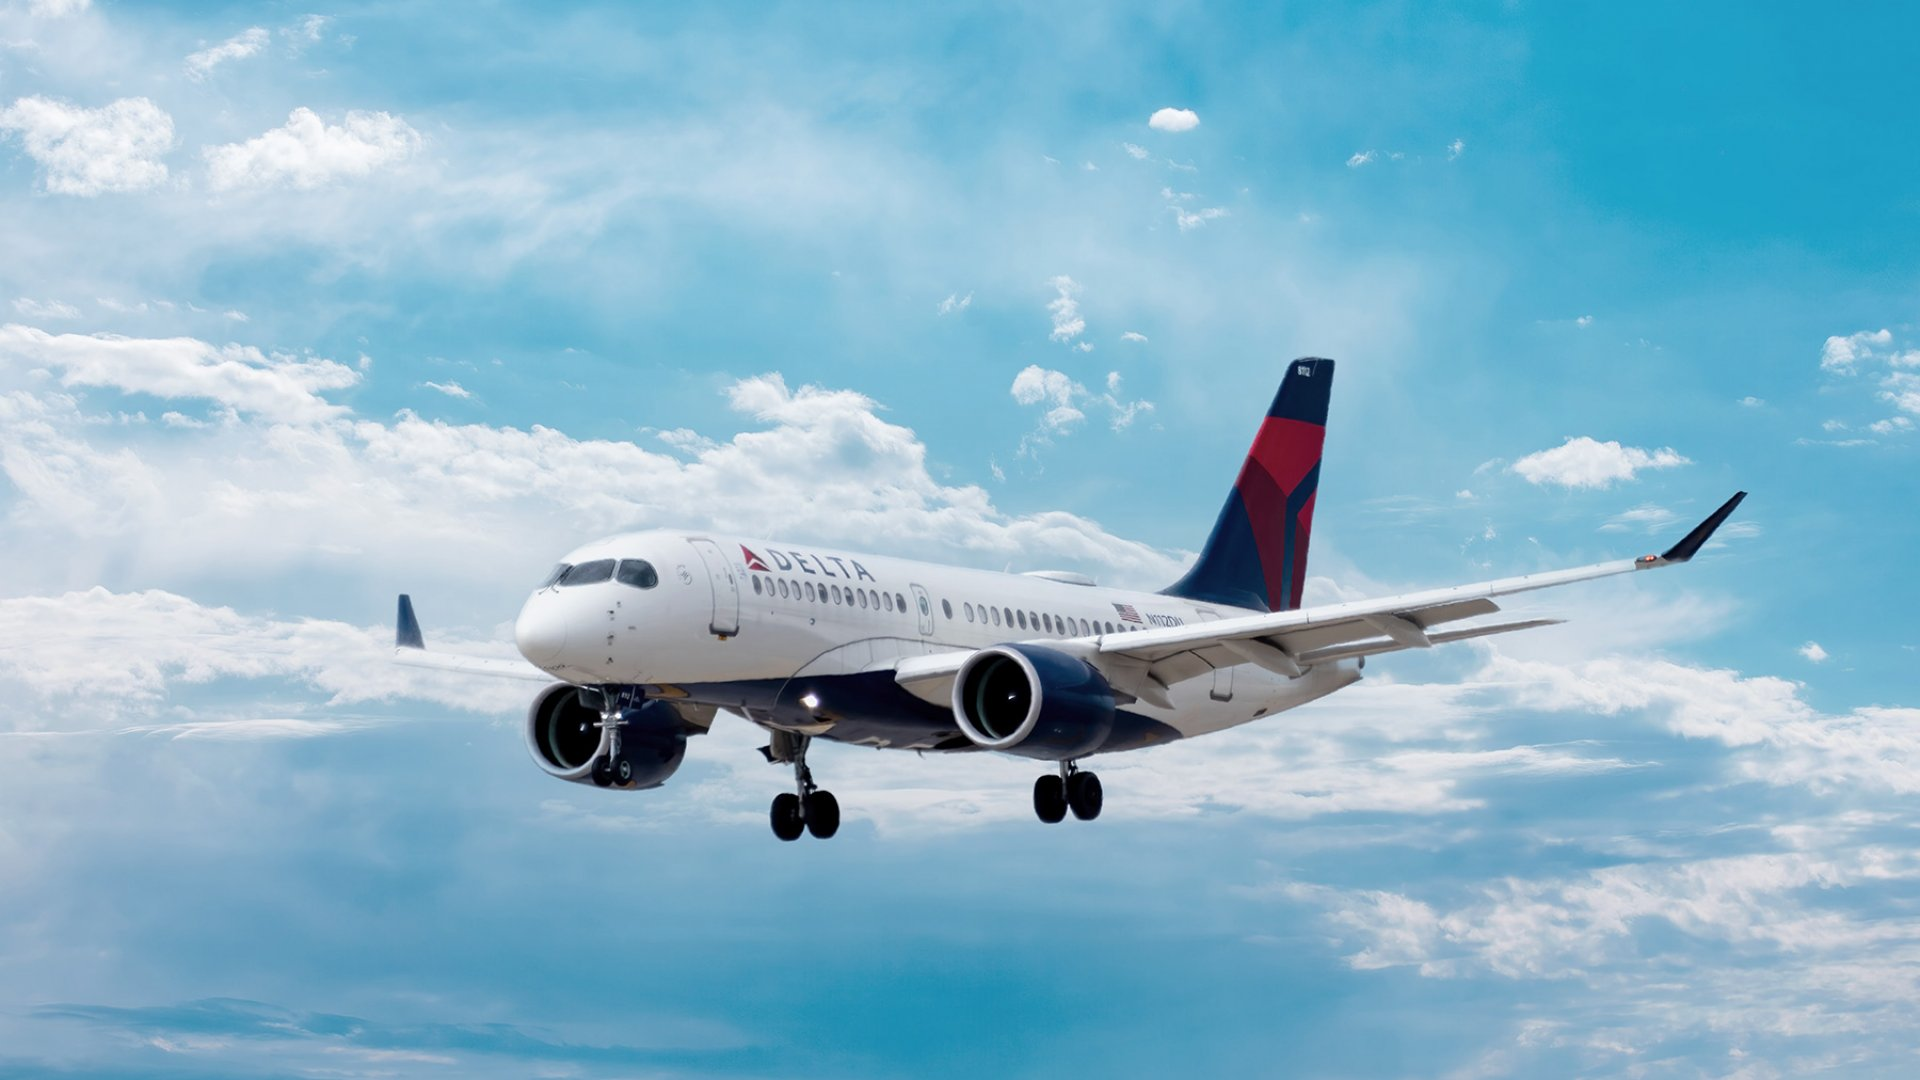 The CEO of Delta Air Lines Just Explained a Radical Change. Here's What It Means for You